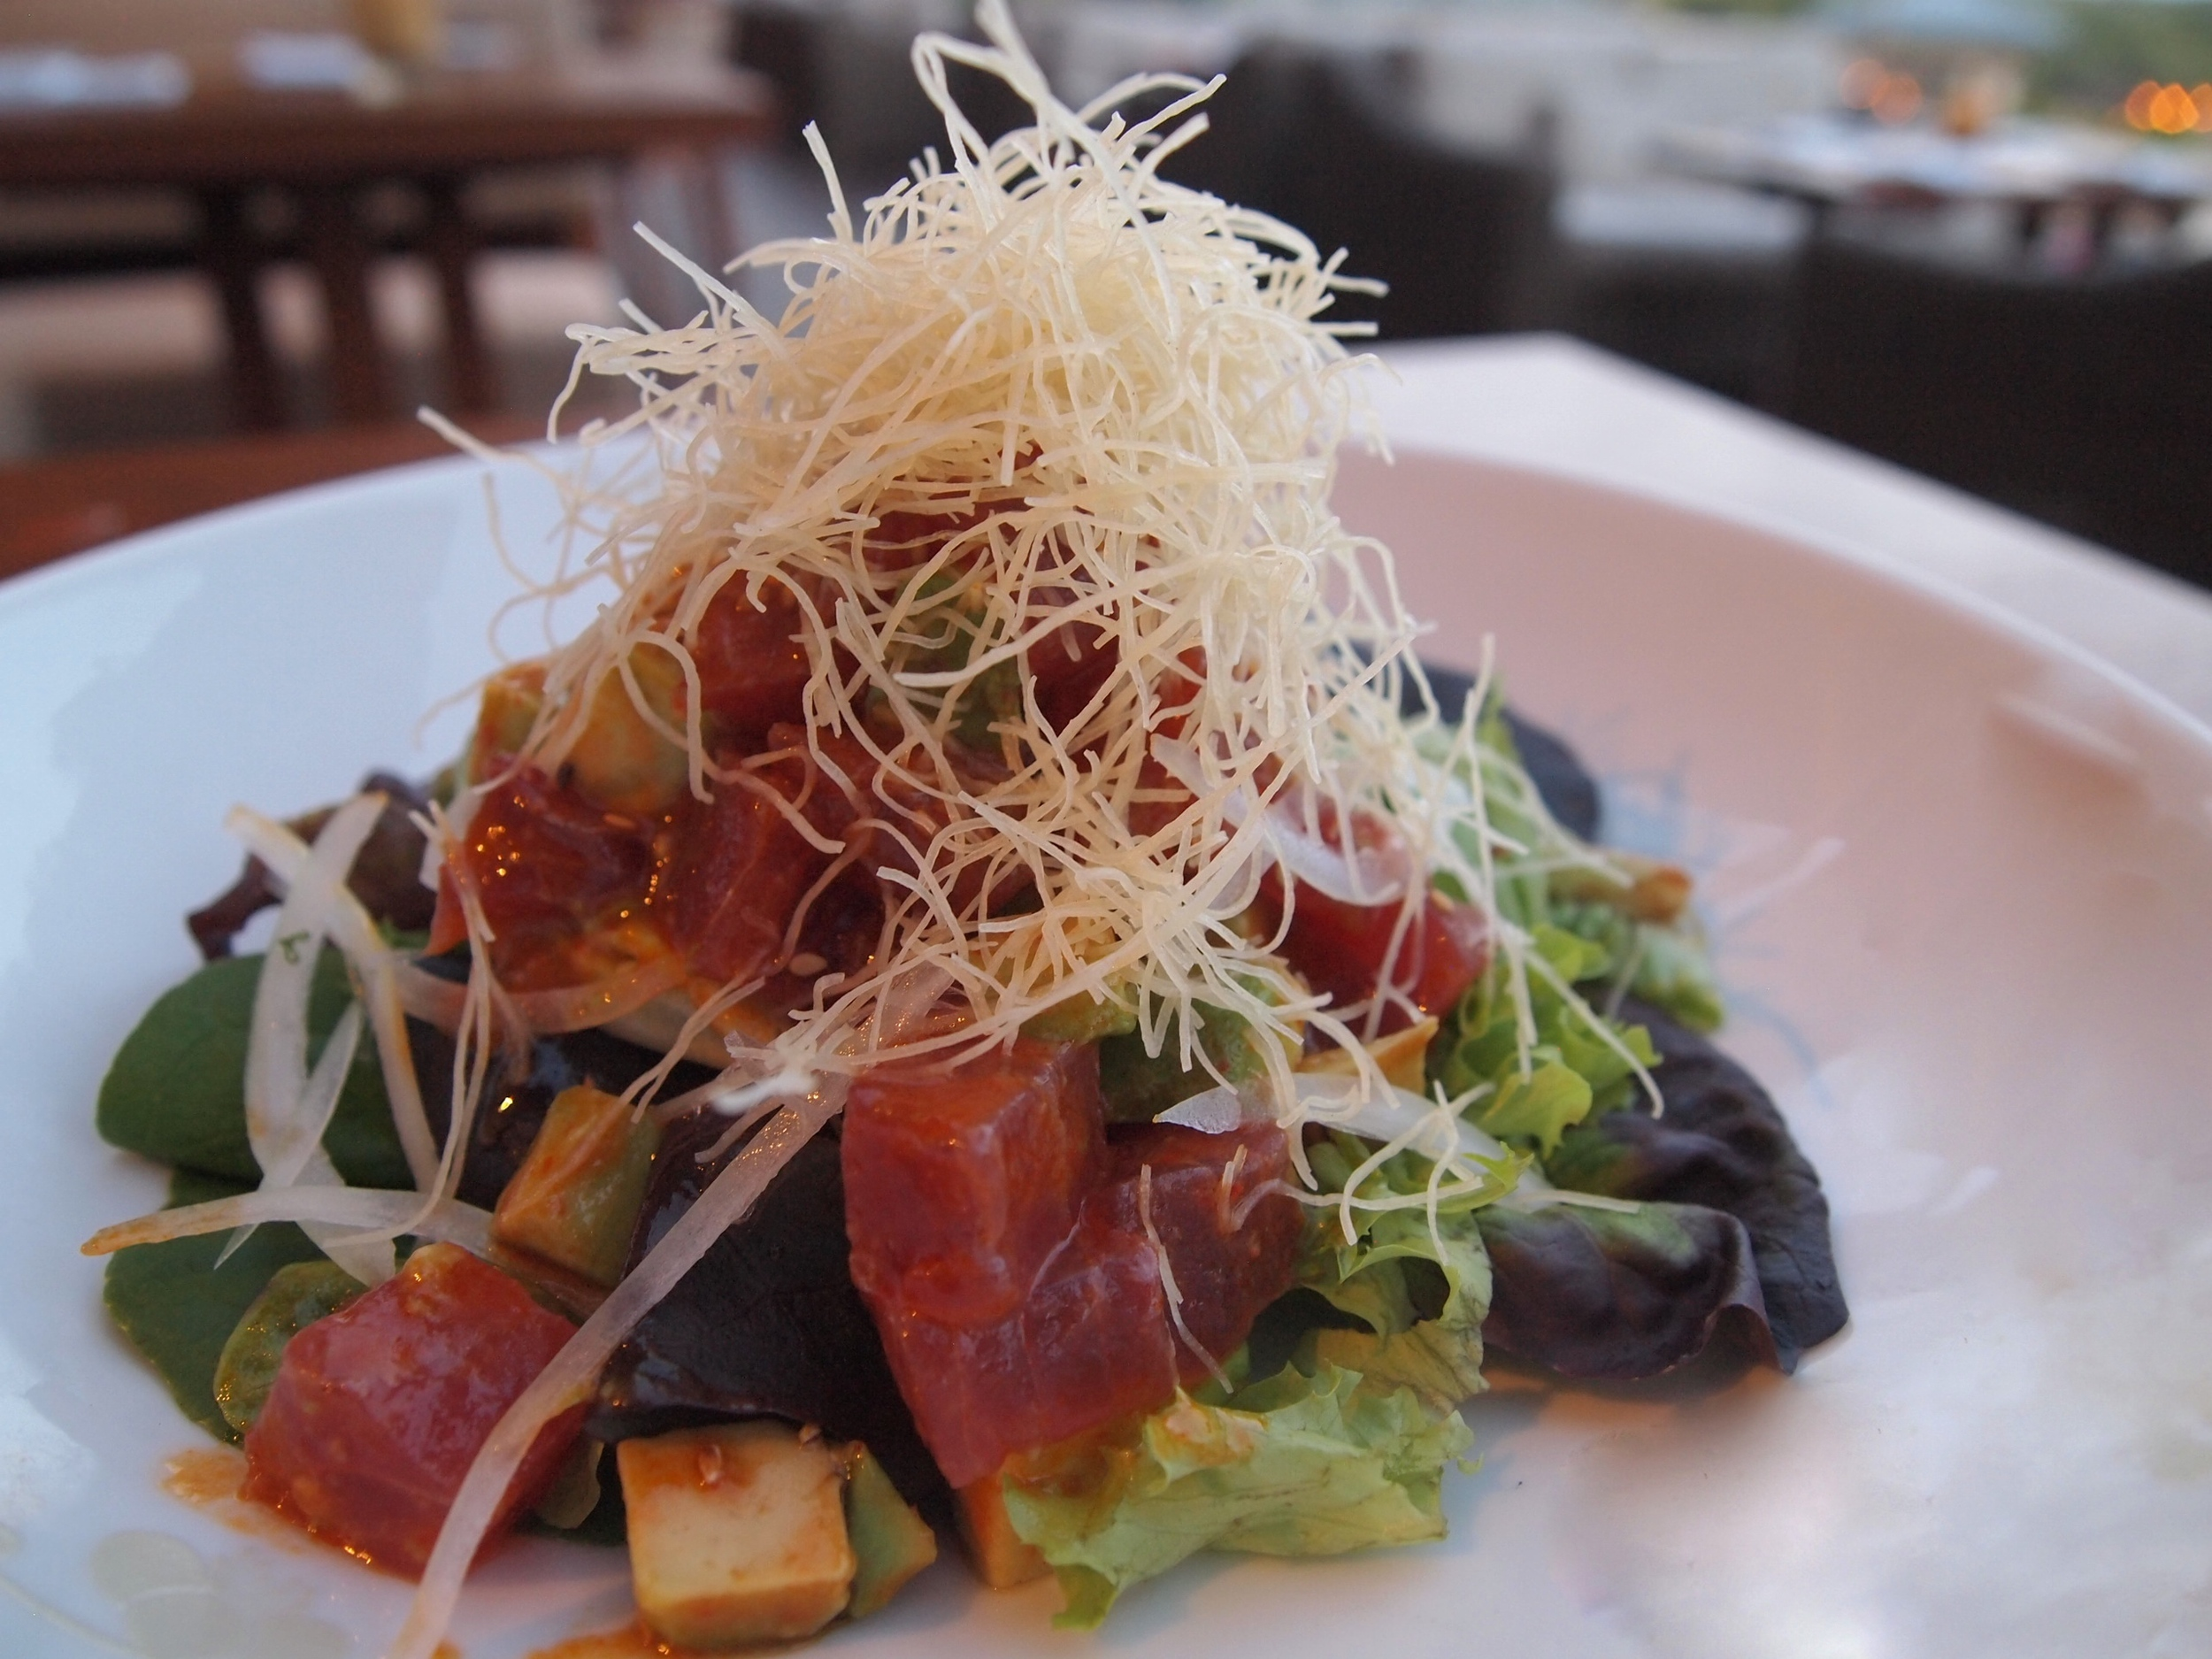 NOBU LANAI's fresh tuna salad withgreens from its on-site lettuce patch